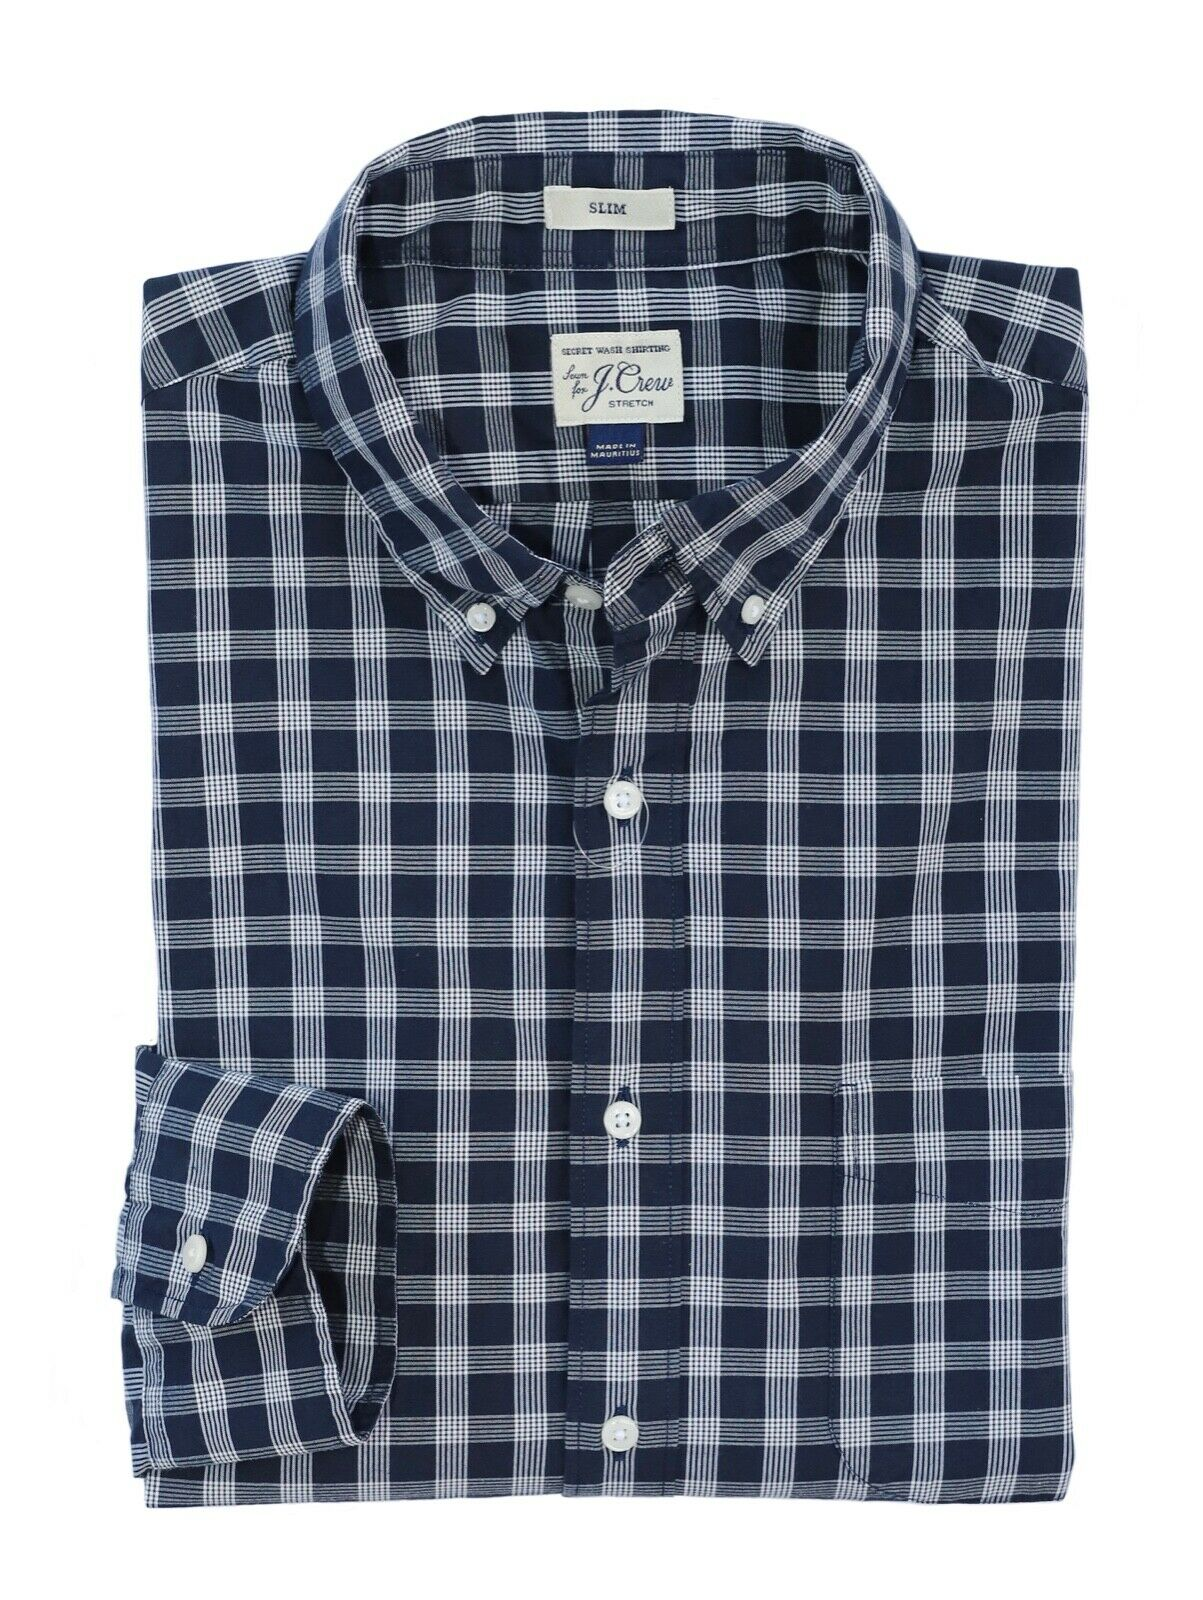 J.Crew - Men's L Slim Fit - NWT - Navy White Plaid Secret Wash Cotton Shirt